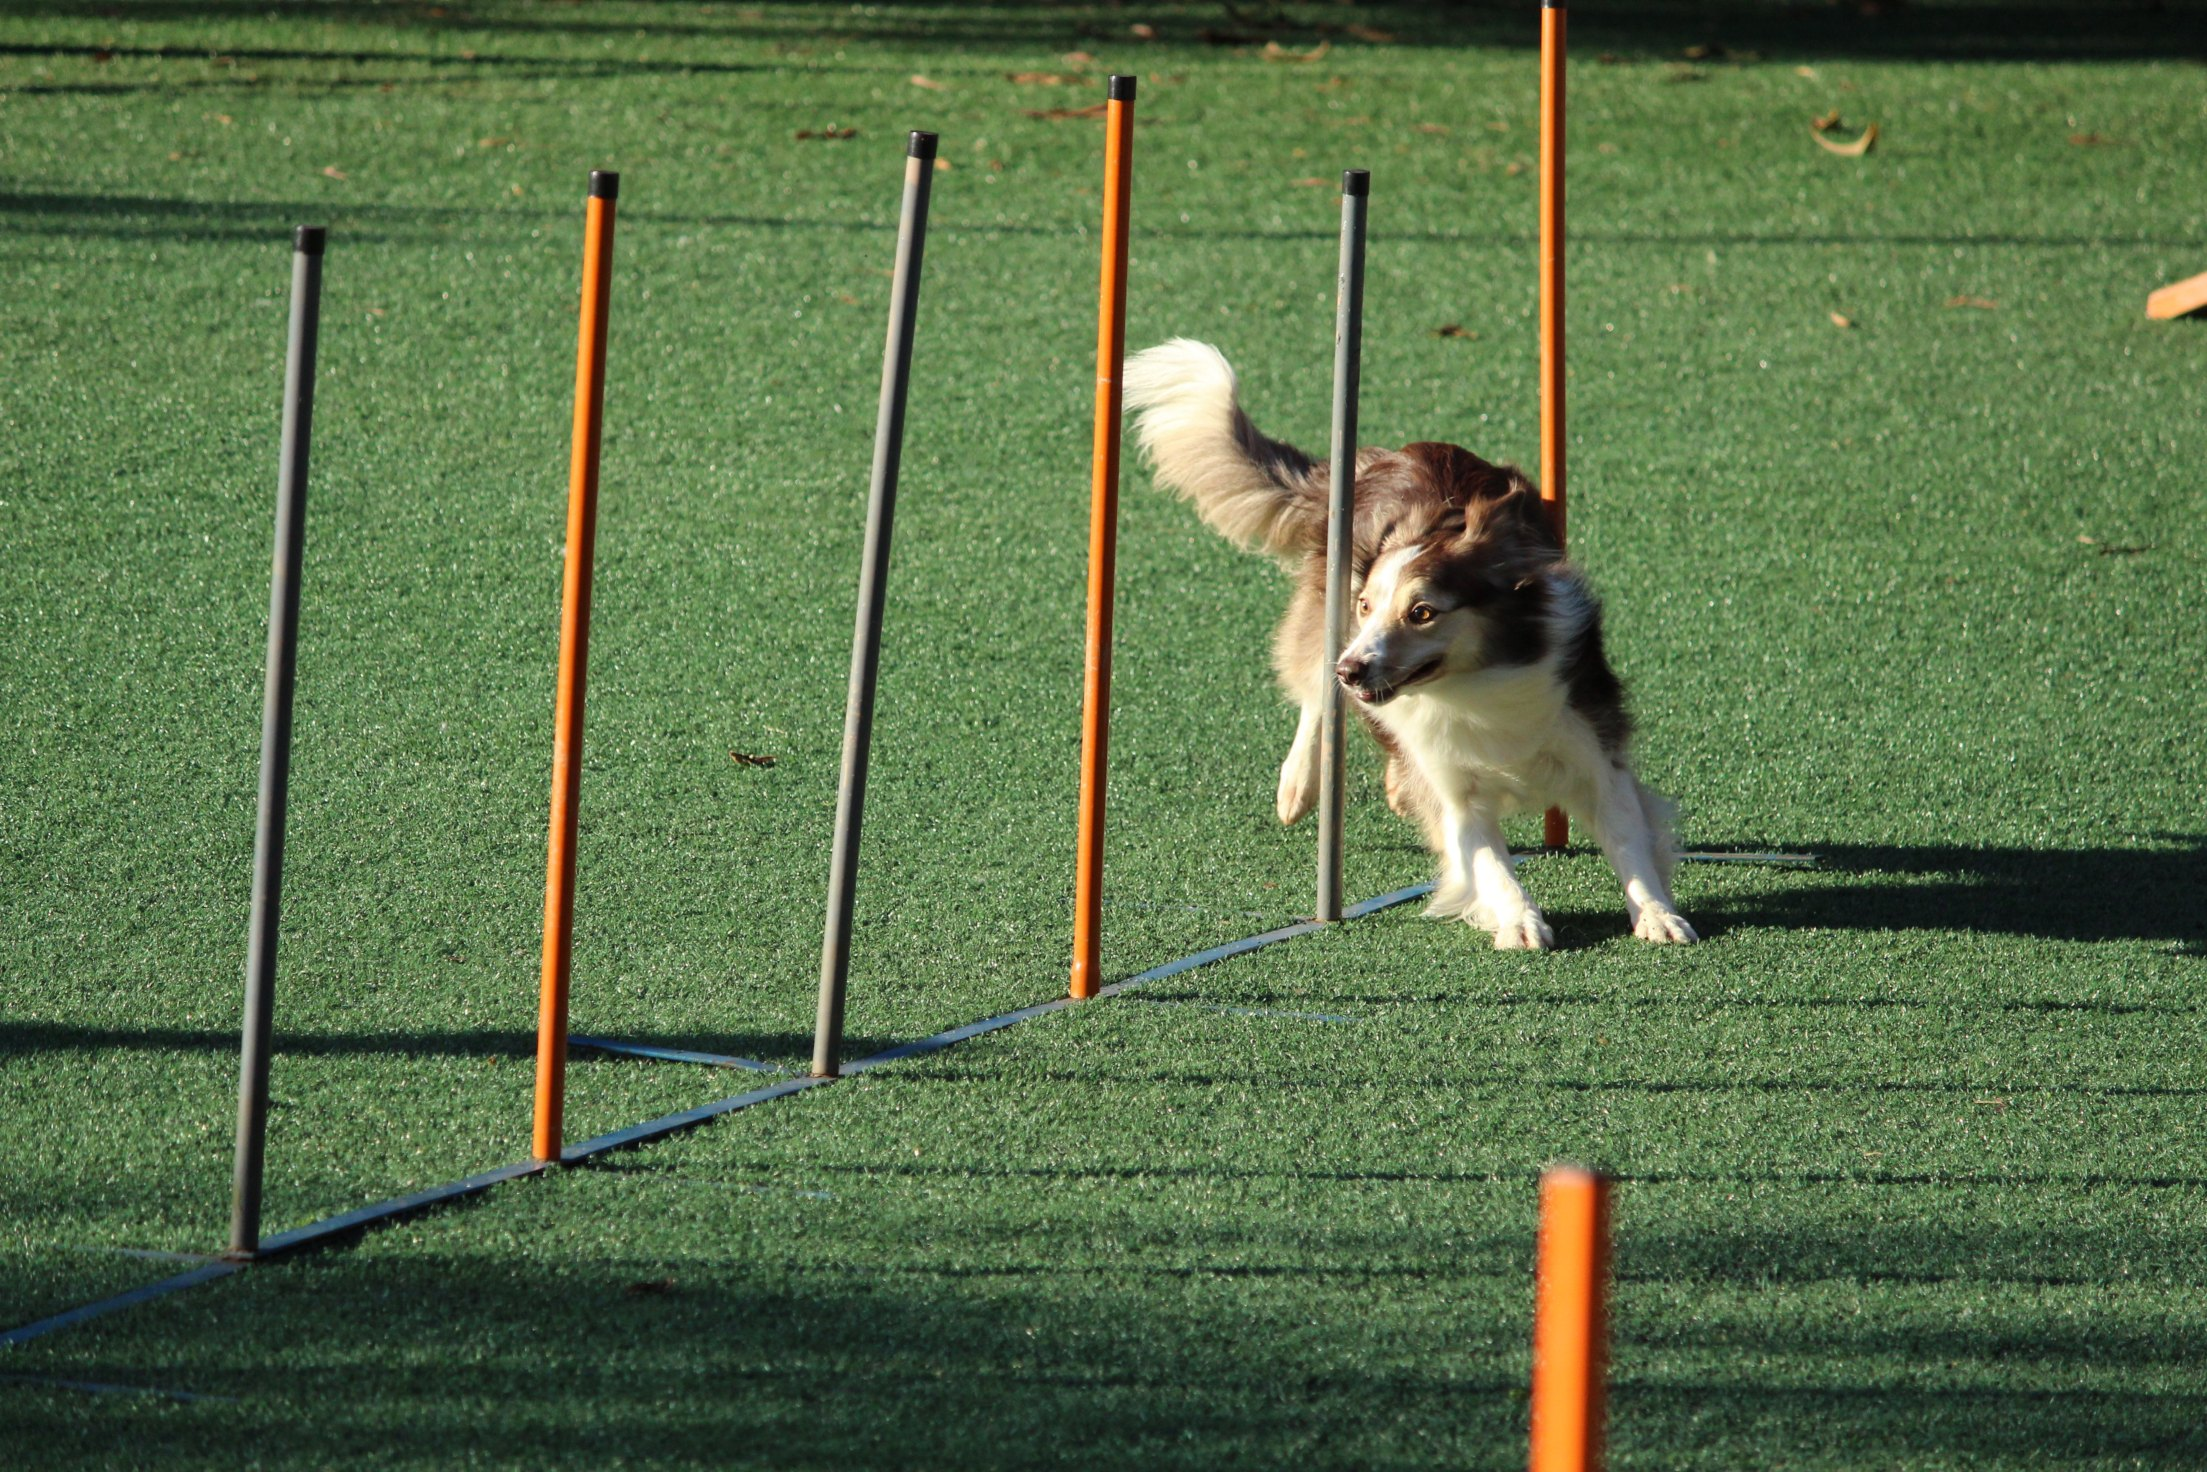 Agility in action